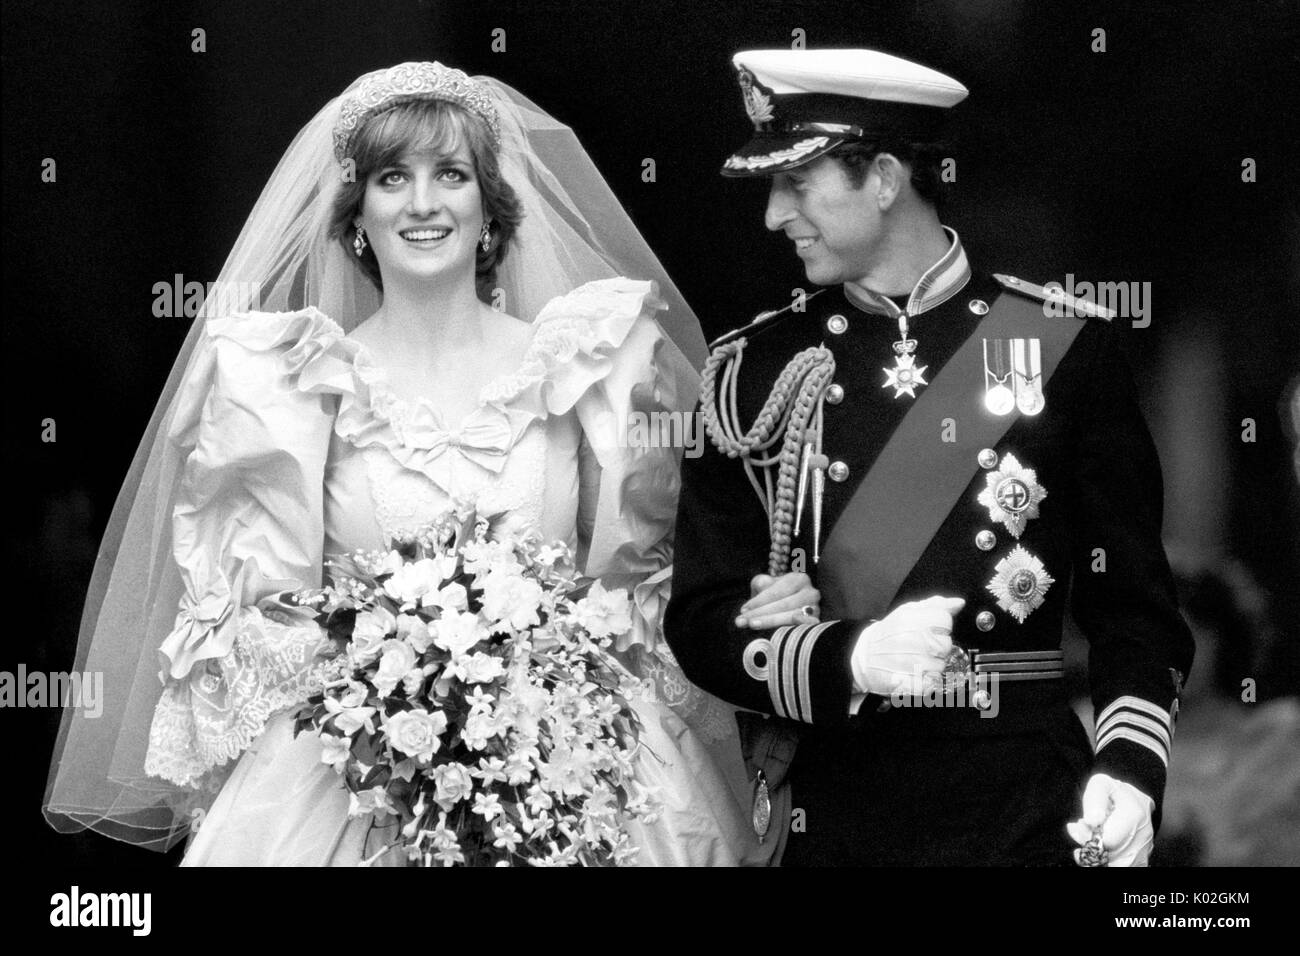 """File photo dated 29/07/81 of the Prince and Princess of Wales on their wedding day. Diana, Princess of Wales was a woman whose warmth, compassion and empathy for those she met earned her the description the """"people's princess"""". - Stock Image"""